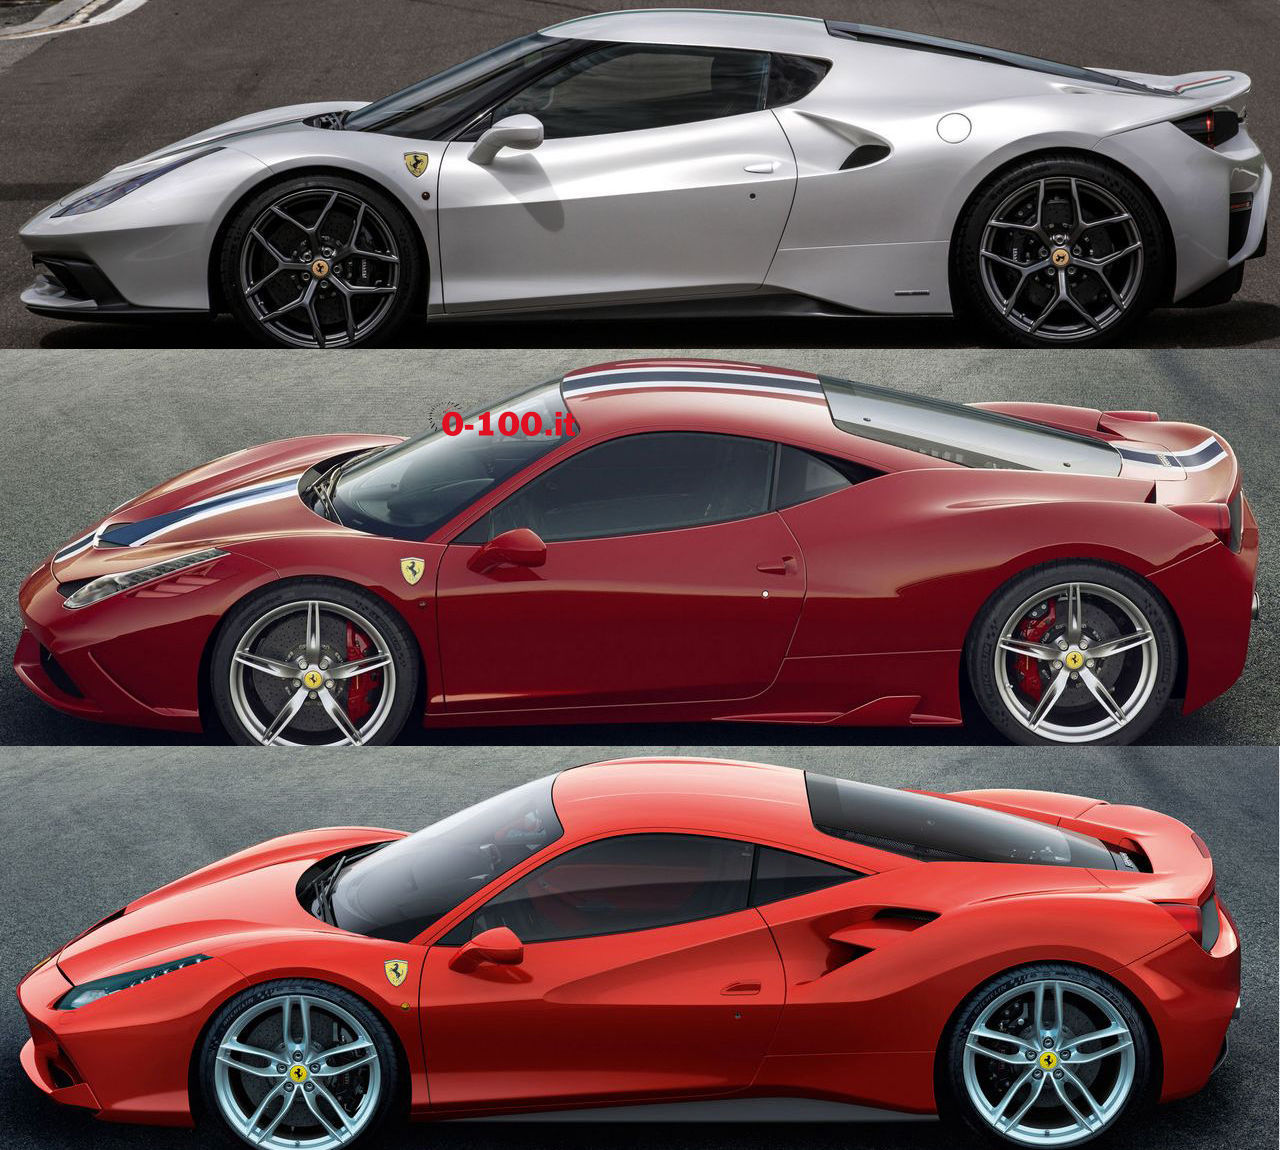 ferrari-458-mm-speciale-one-off-488-gtb_0-100_15